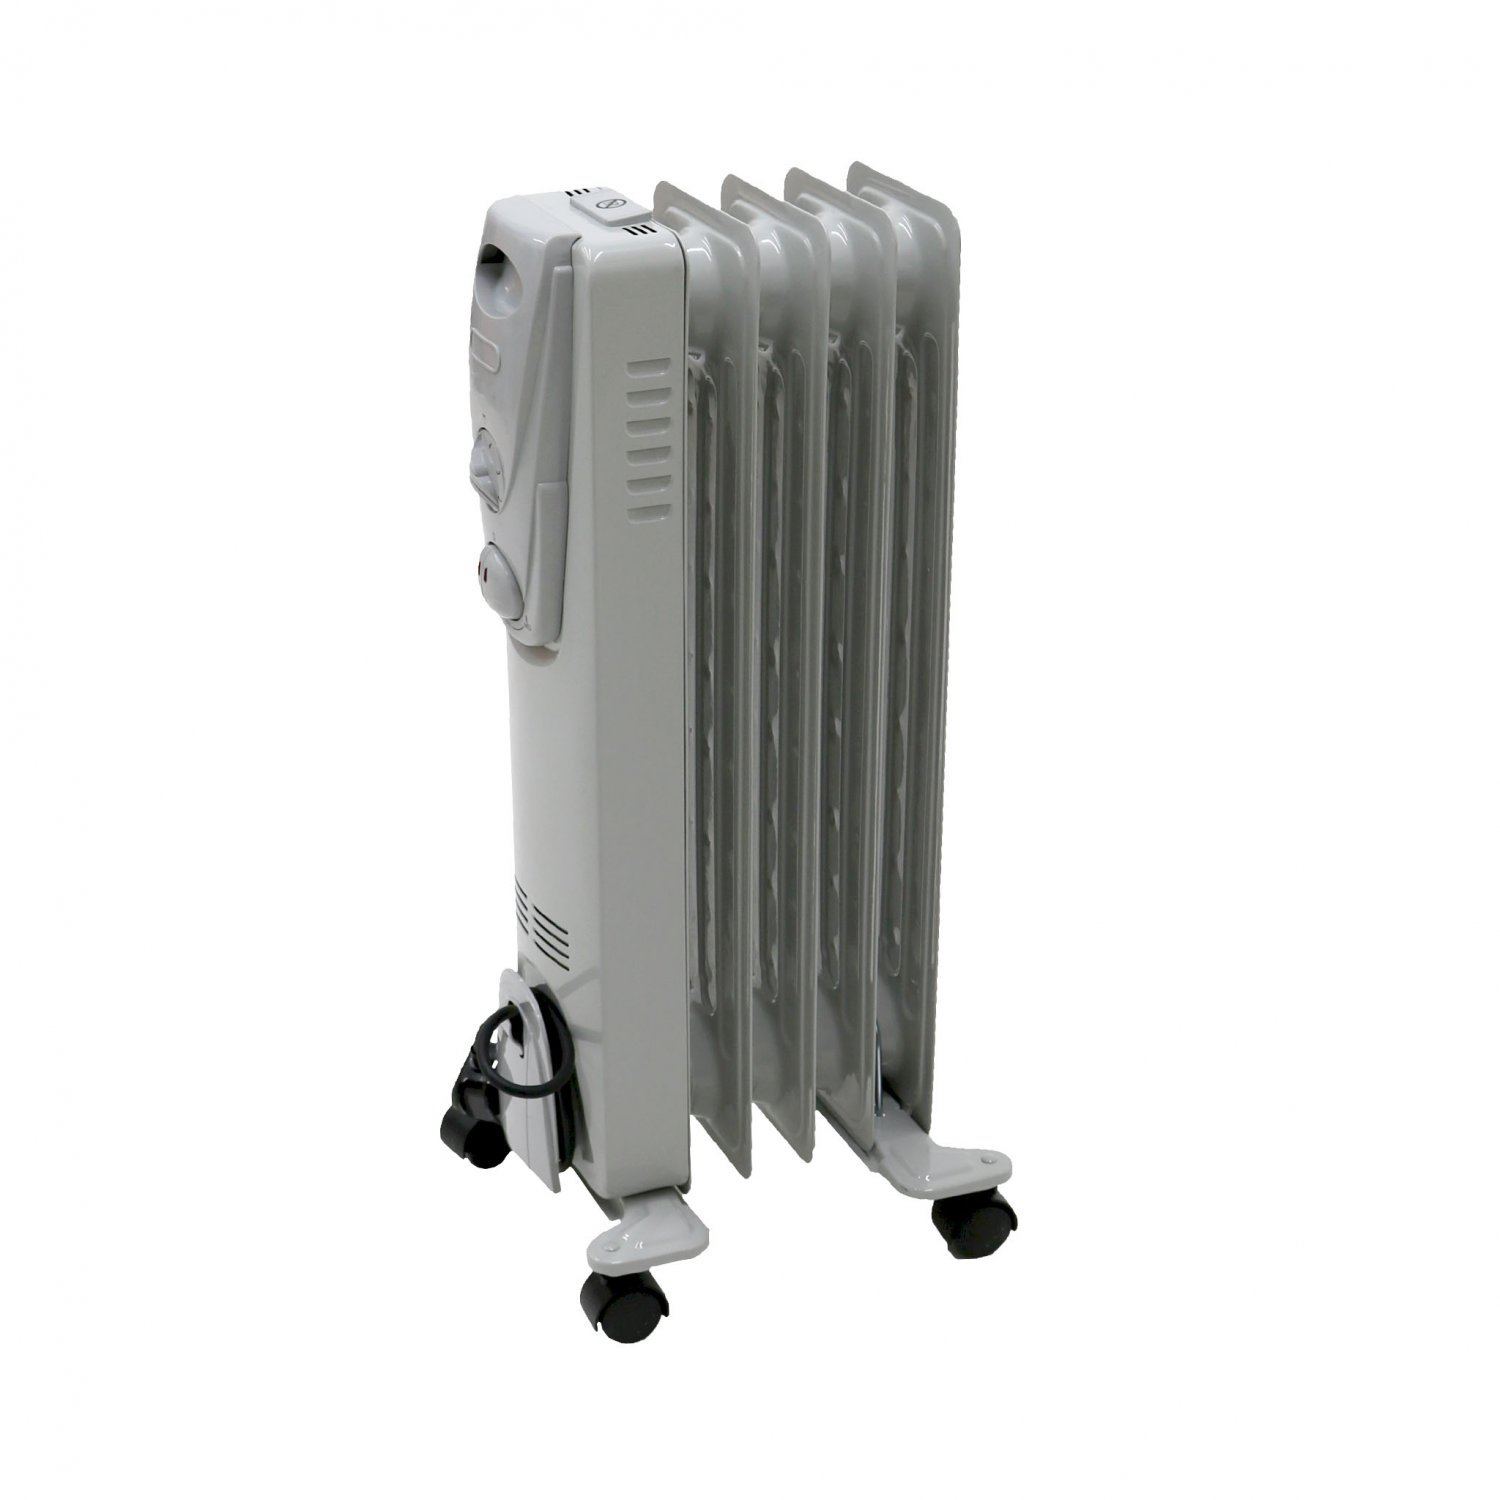 1000W 5 Fin Portable Oil Filled Radiator Electric Heater